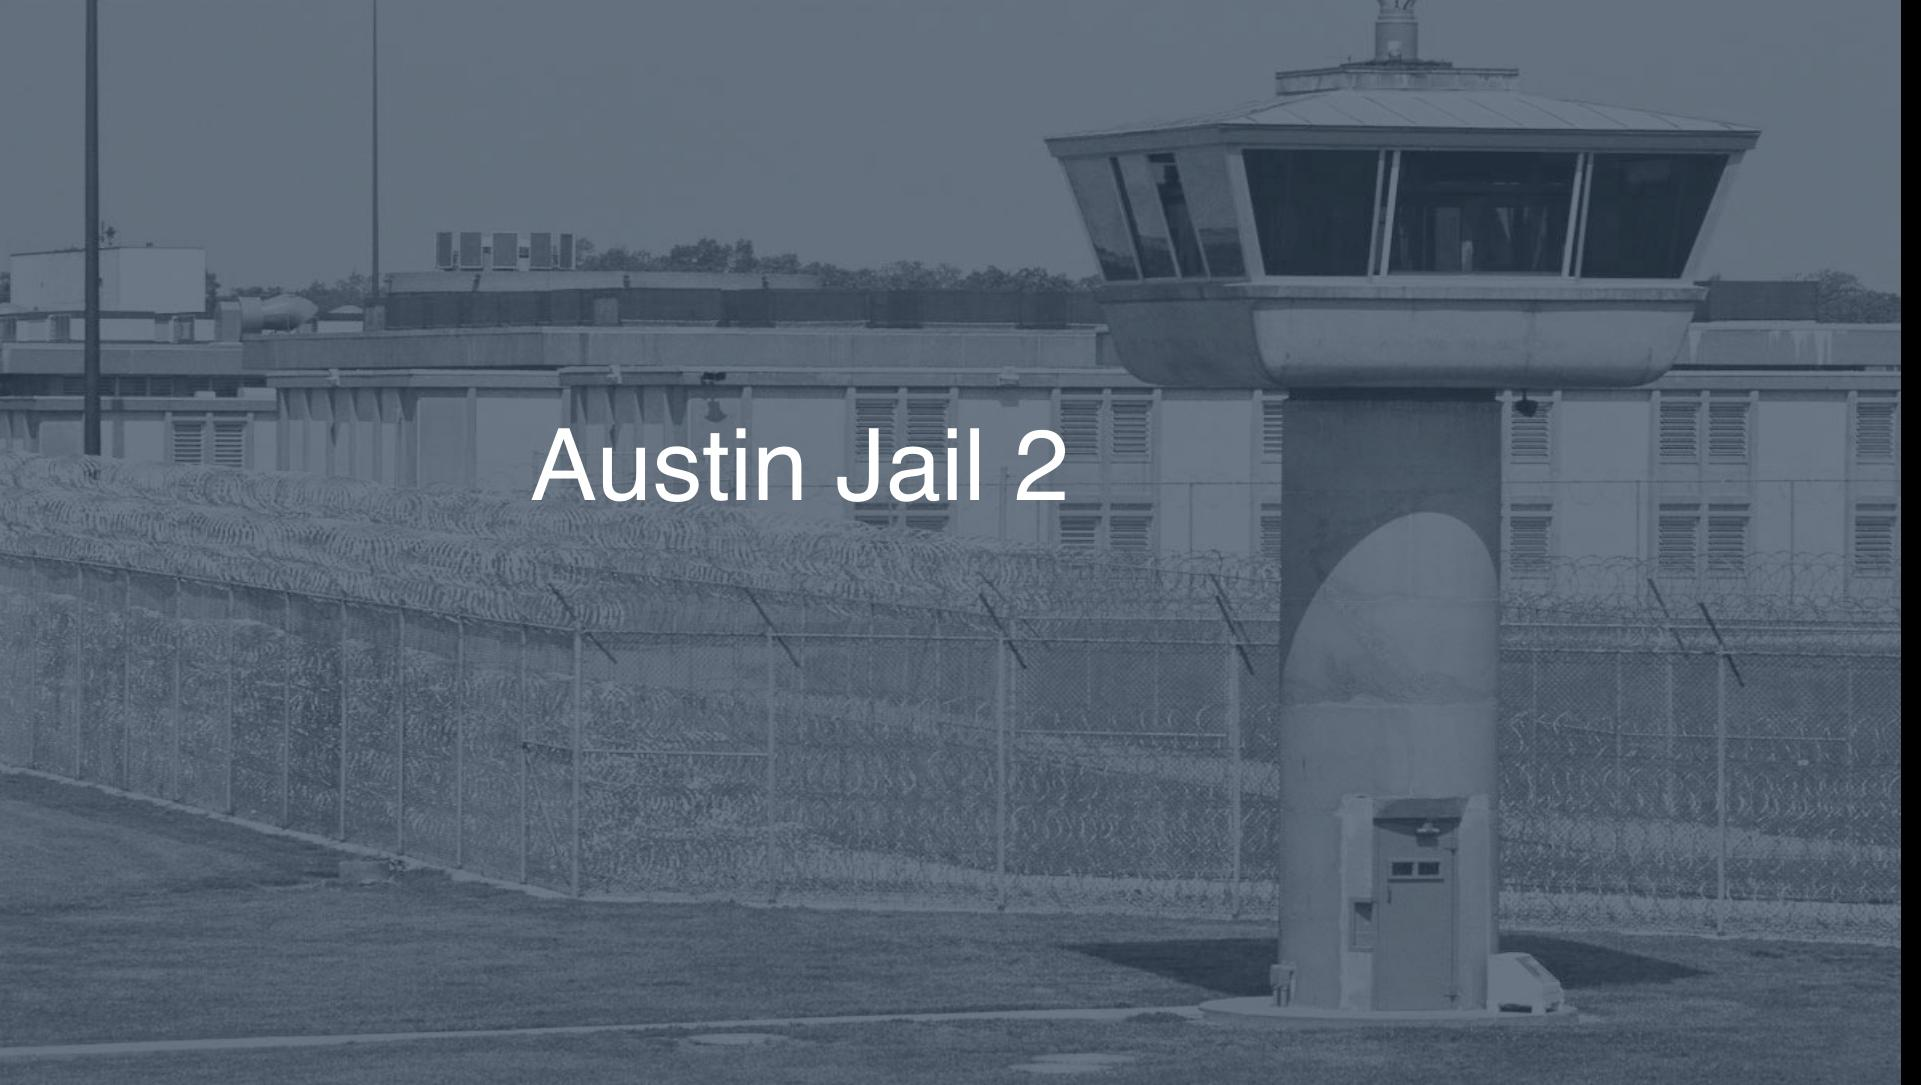 Austin Jail Inmate Search, Lookup & Services - Pigeonly